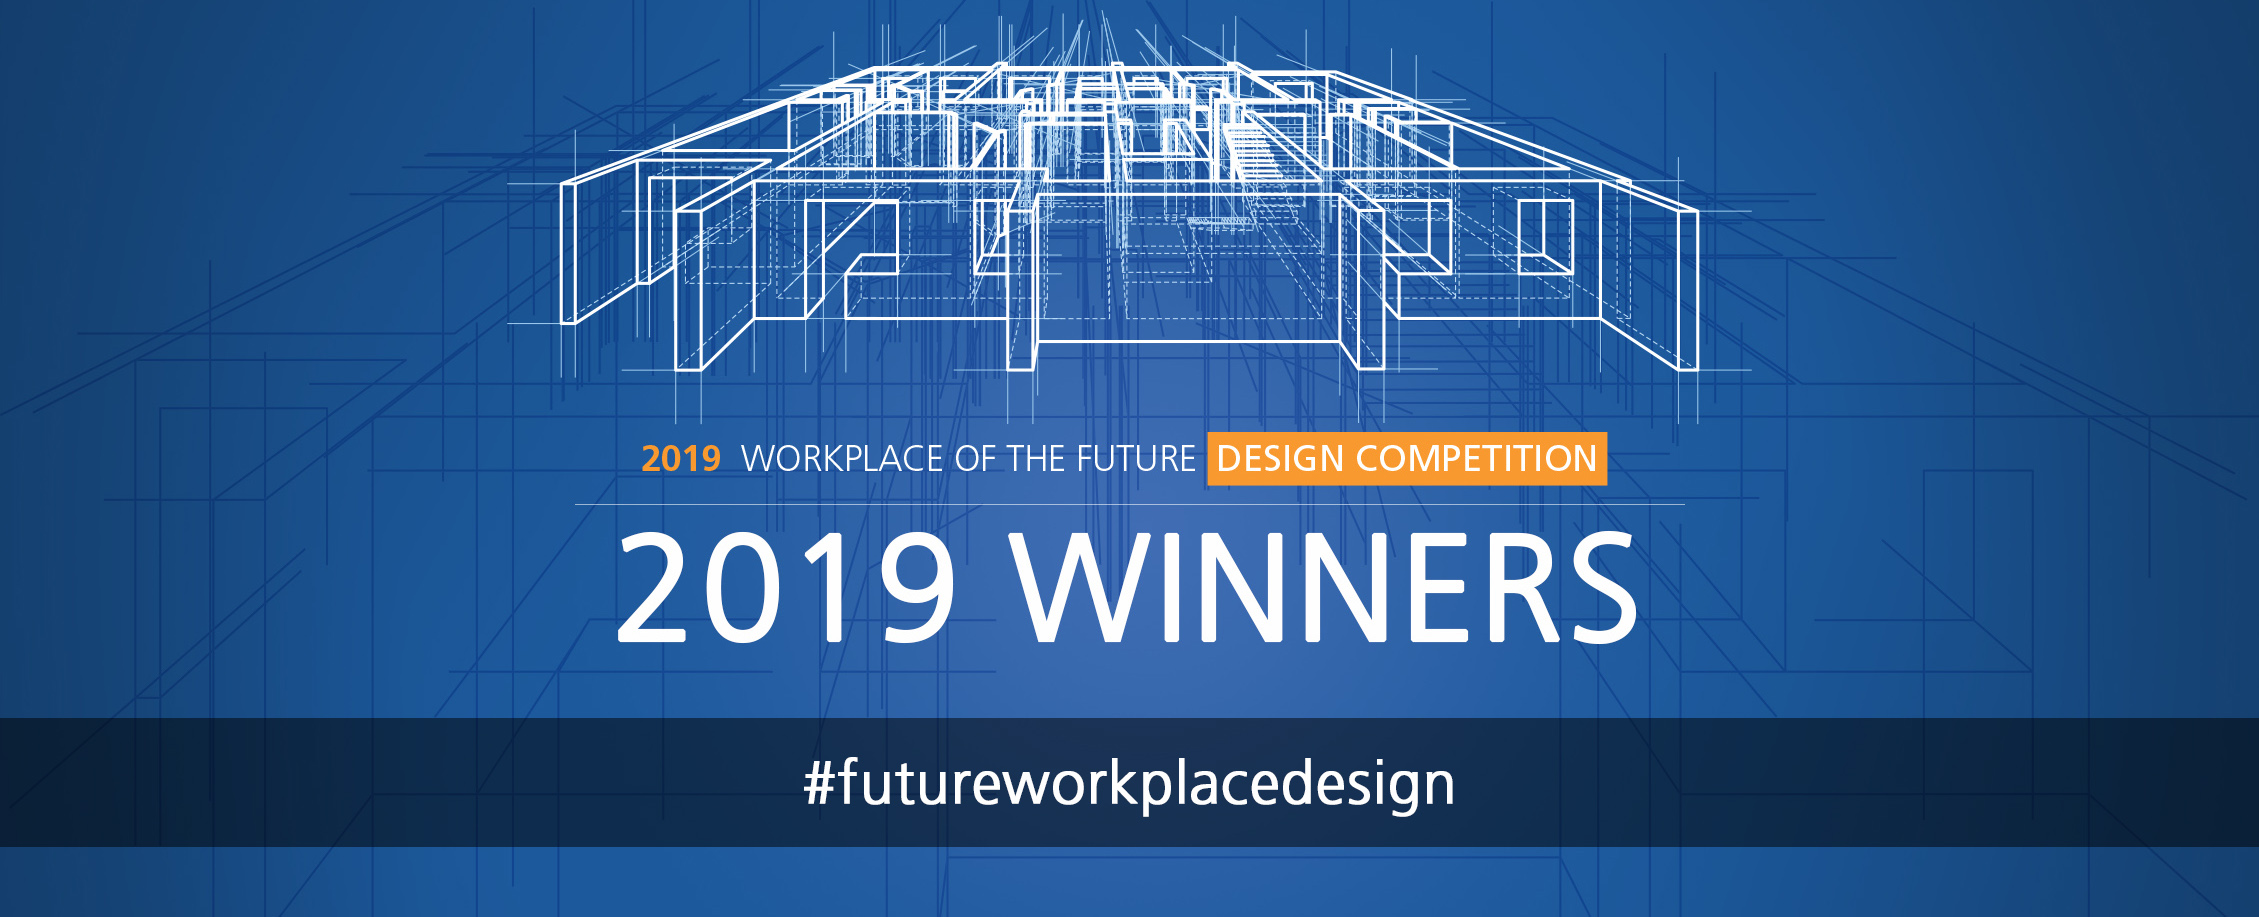 2019 Workplace of the Future Design Competition Winners